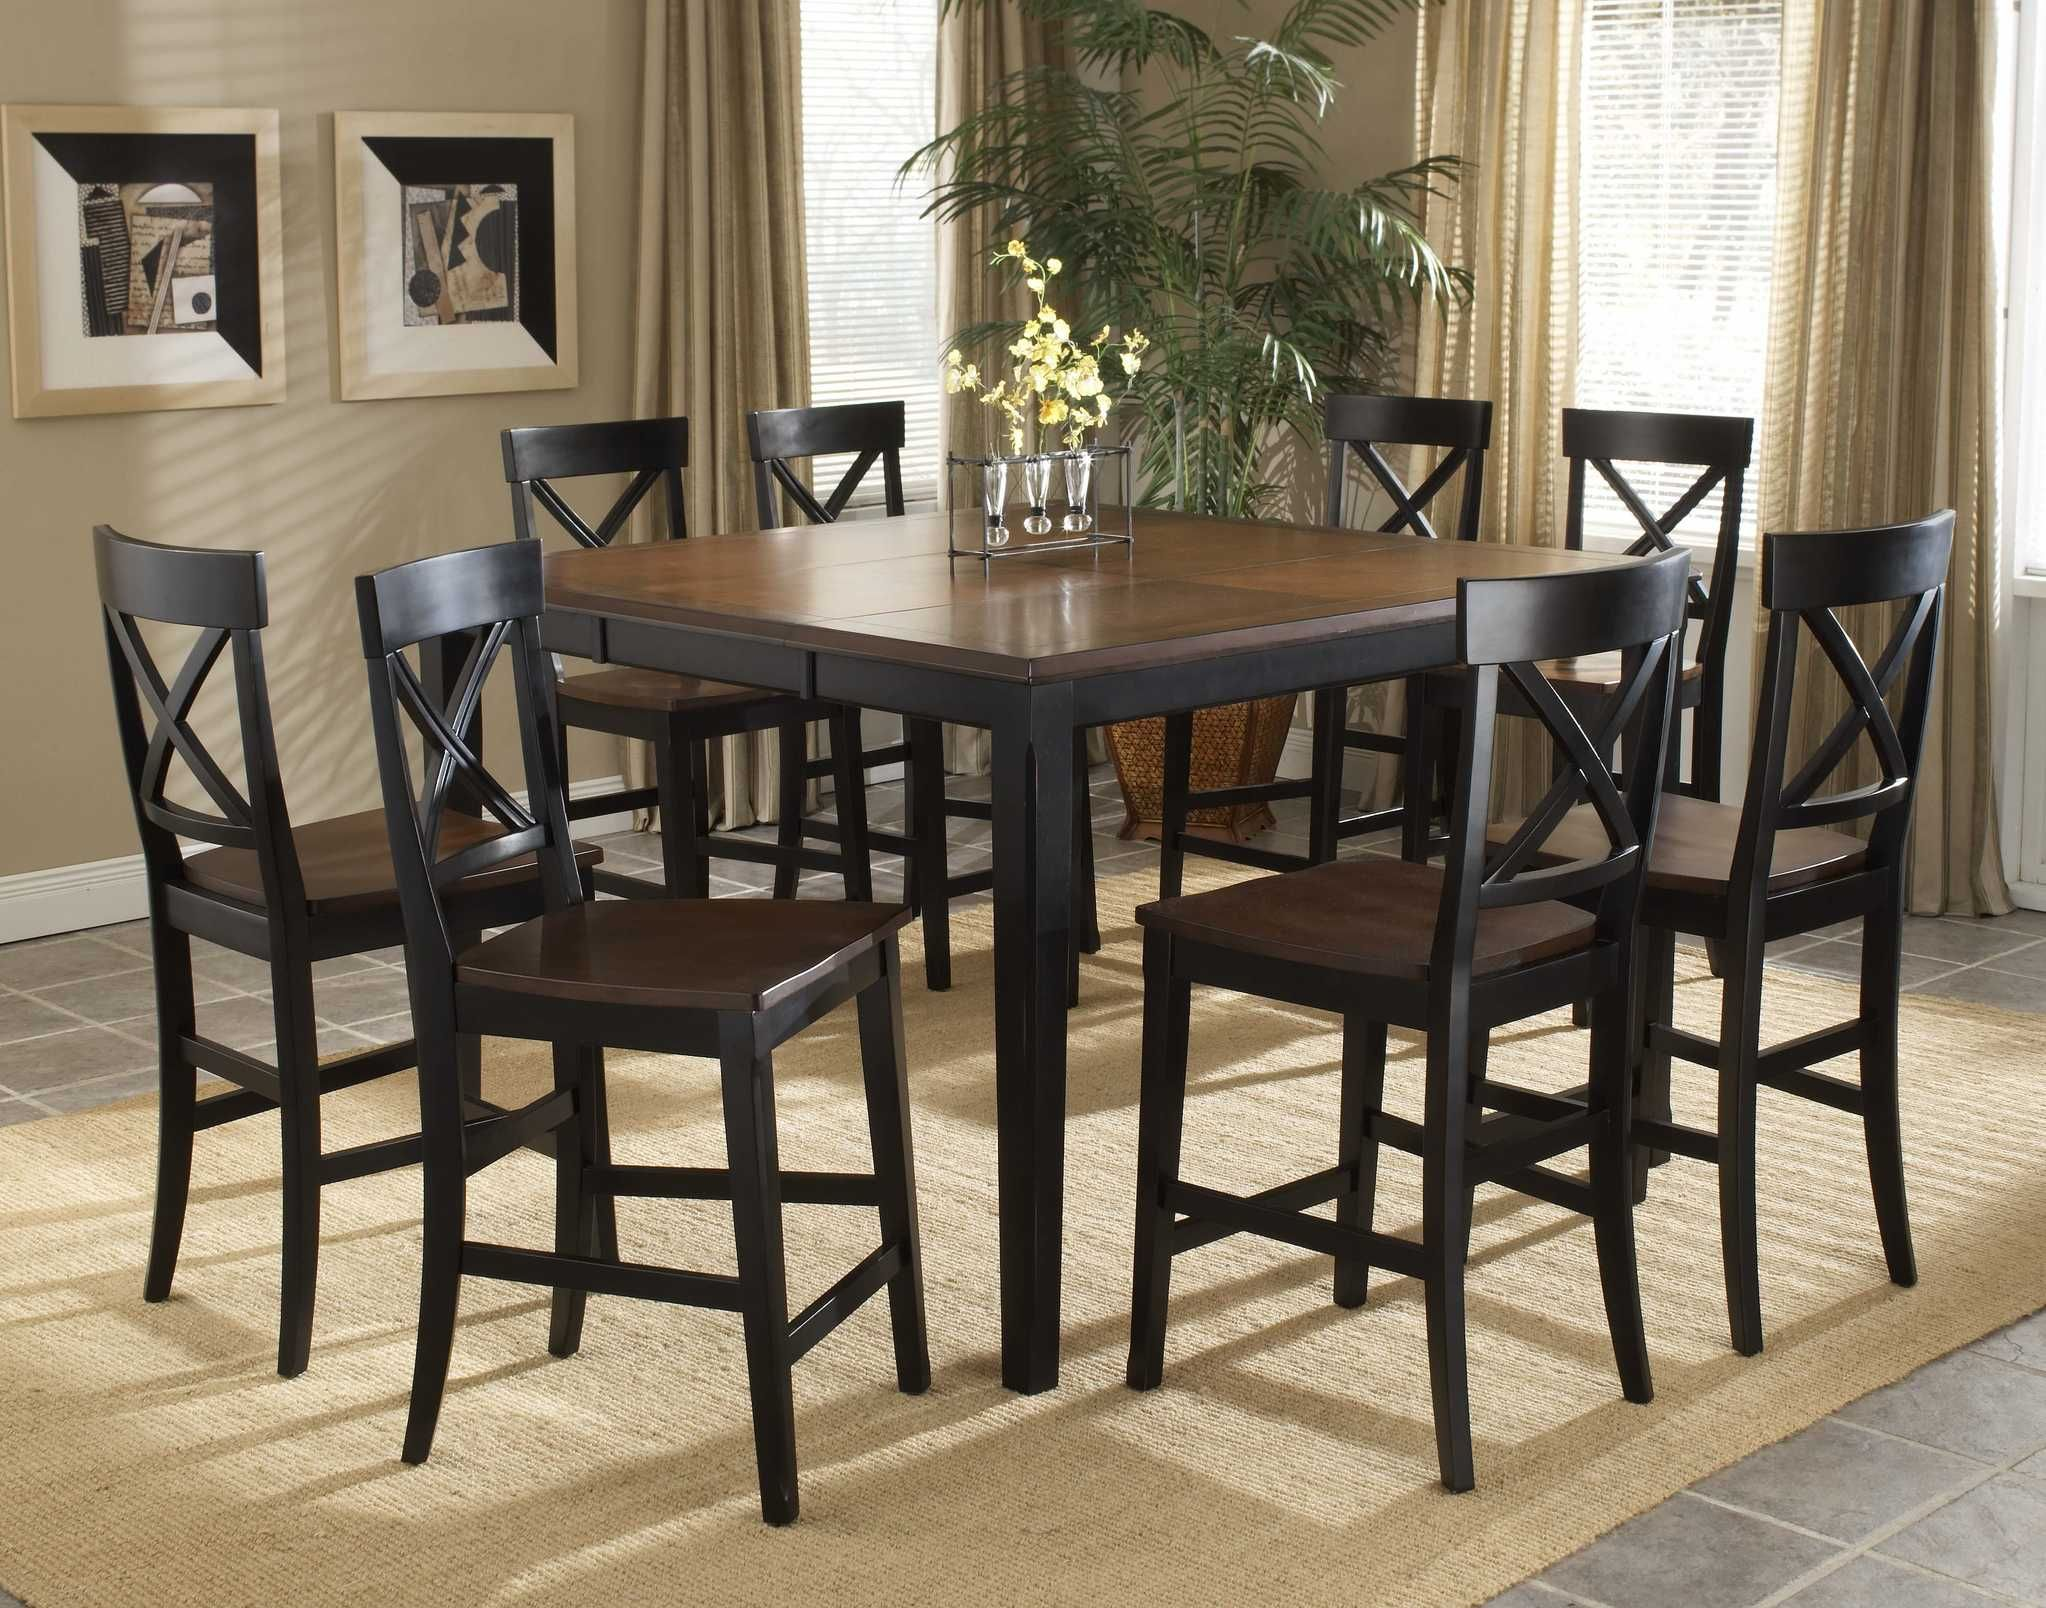 Transitional Distressed Black Counter Height Dining Room Table Set